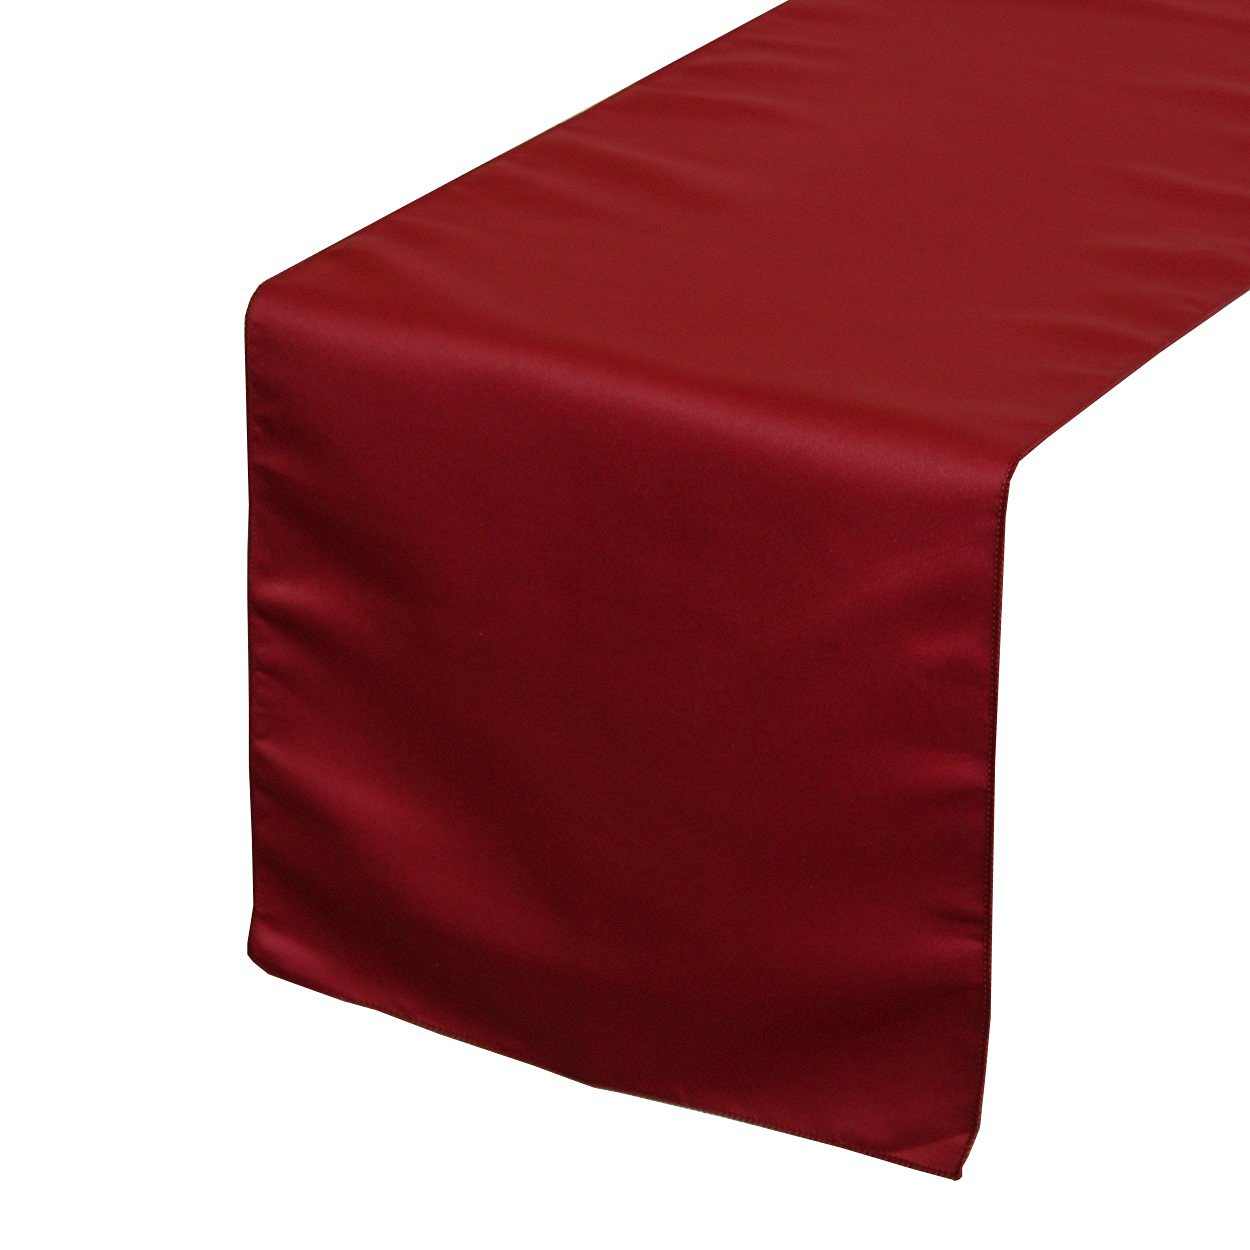 Your Chair Covers - 14 x 108 inch Lamour Table Runners Dark Red, Table Runner for Weddings, Events, Hotels and Catering Services